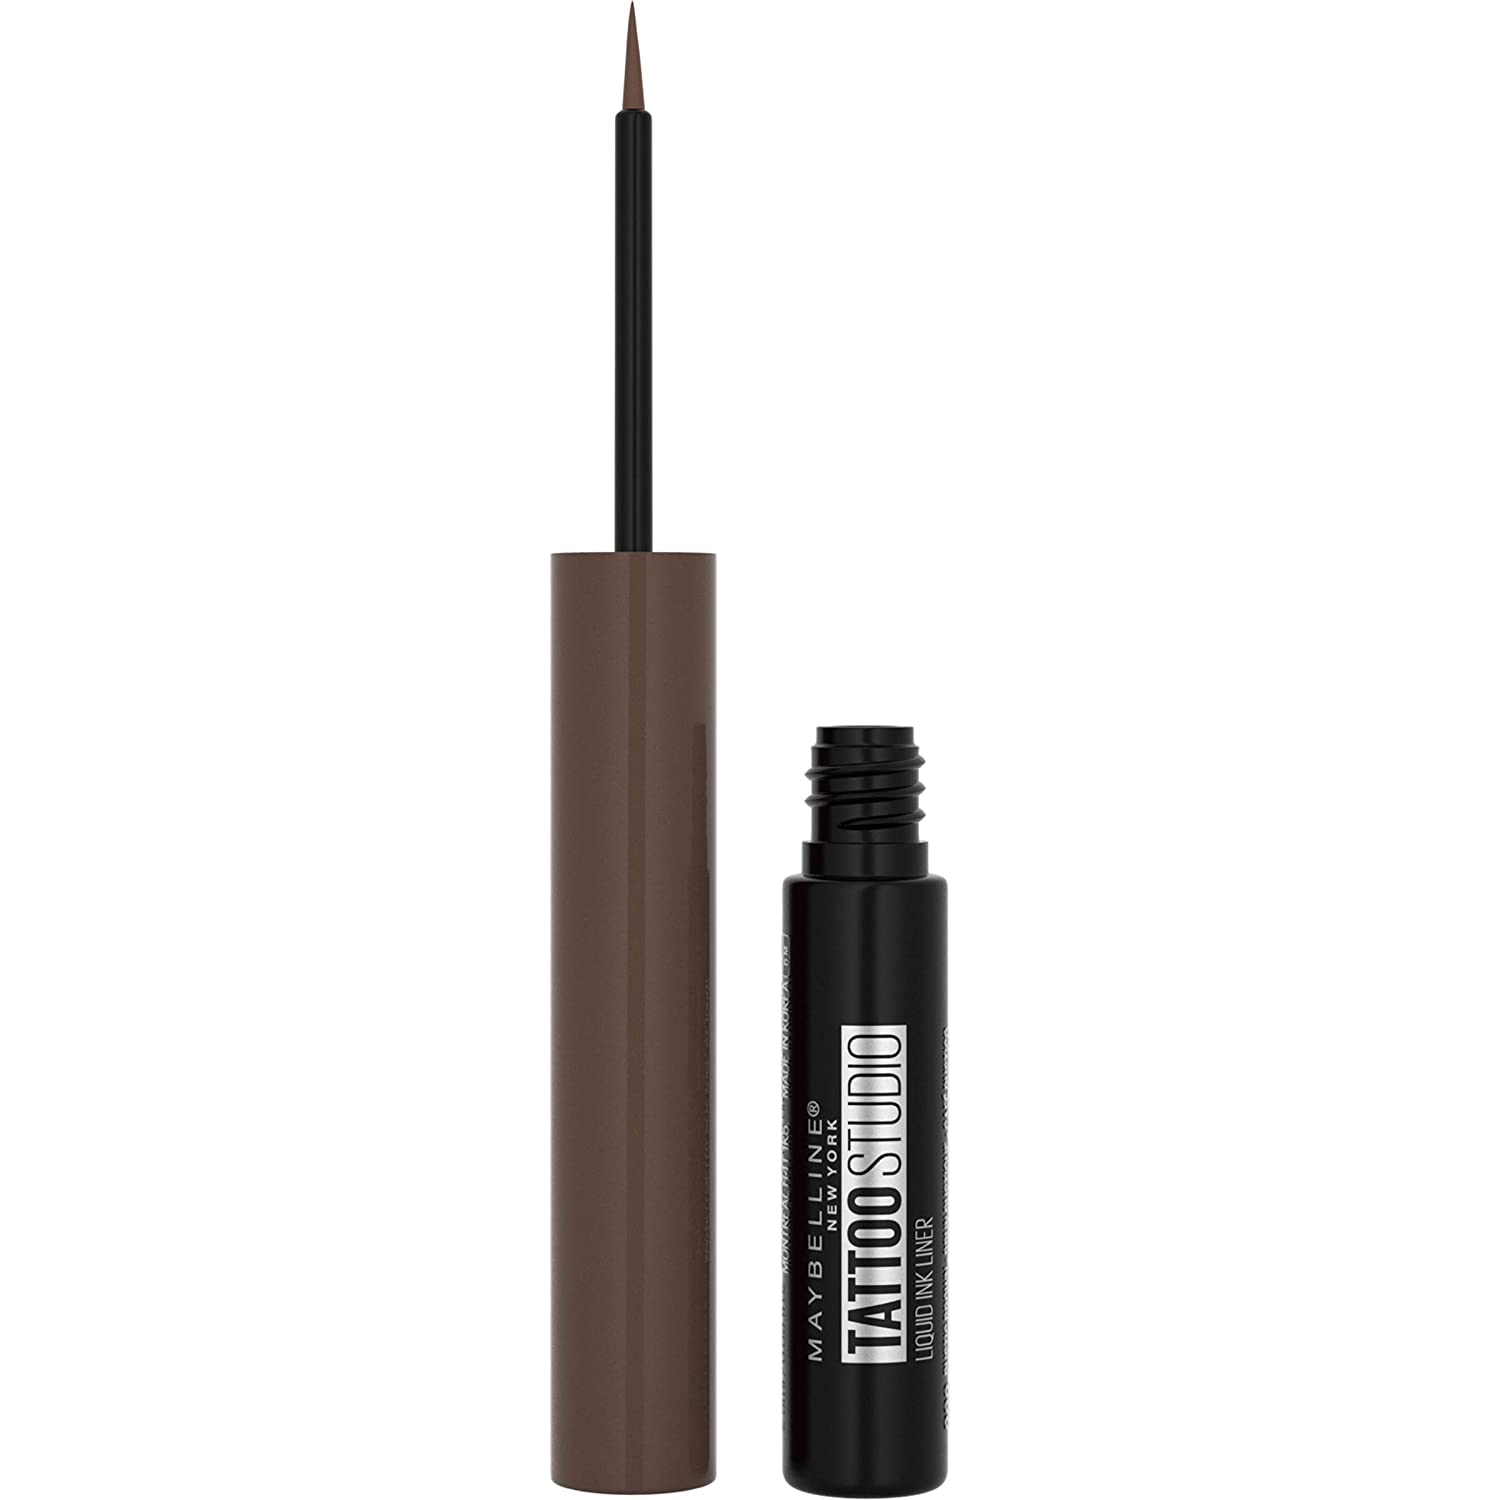 Maybelline TattooStudio Liquid Ink Liner Up To 36HR Wear, Sweat Resistant, Smudge Resistant, No Mess Removal, Longwear Liquid Eyeliner Makeup, Rustic Brown, 0.08 fl. oz.